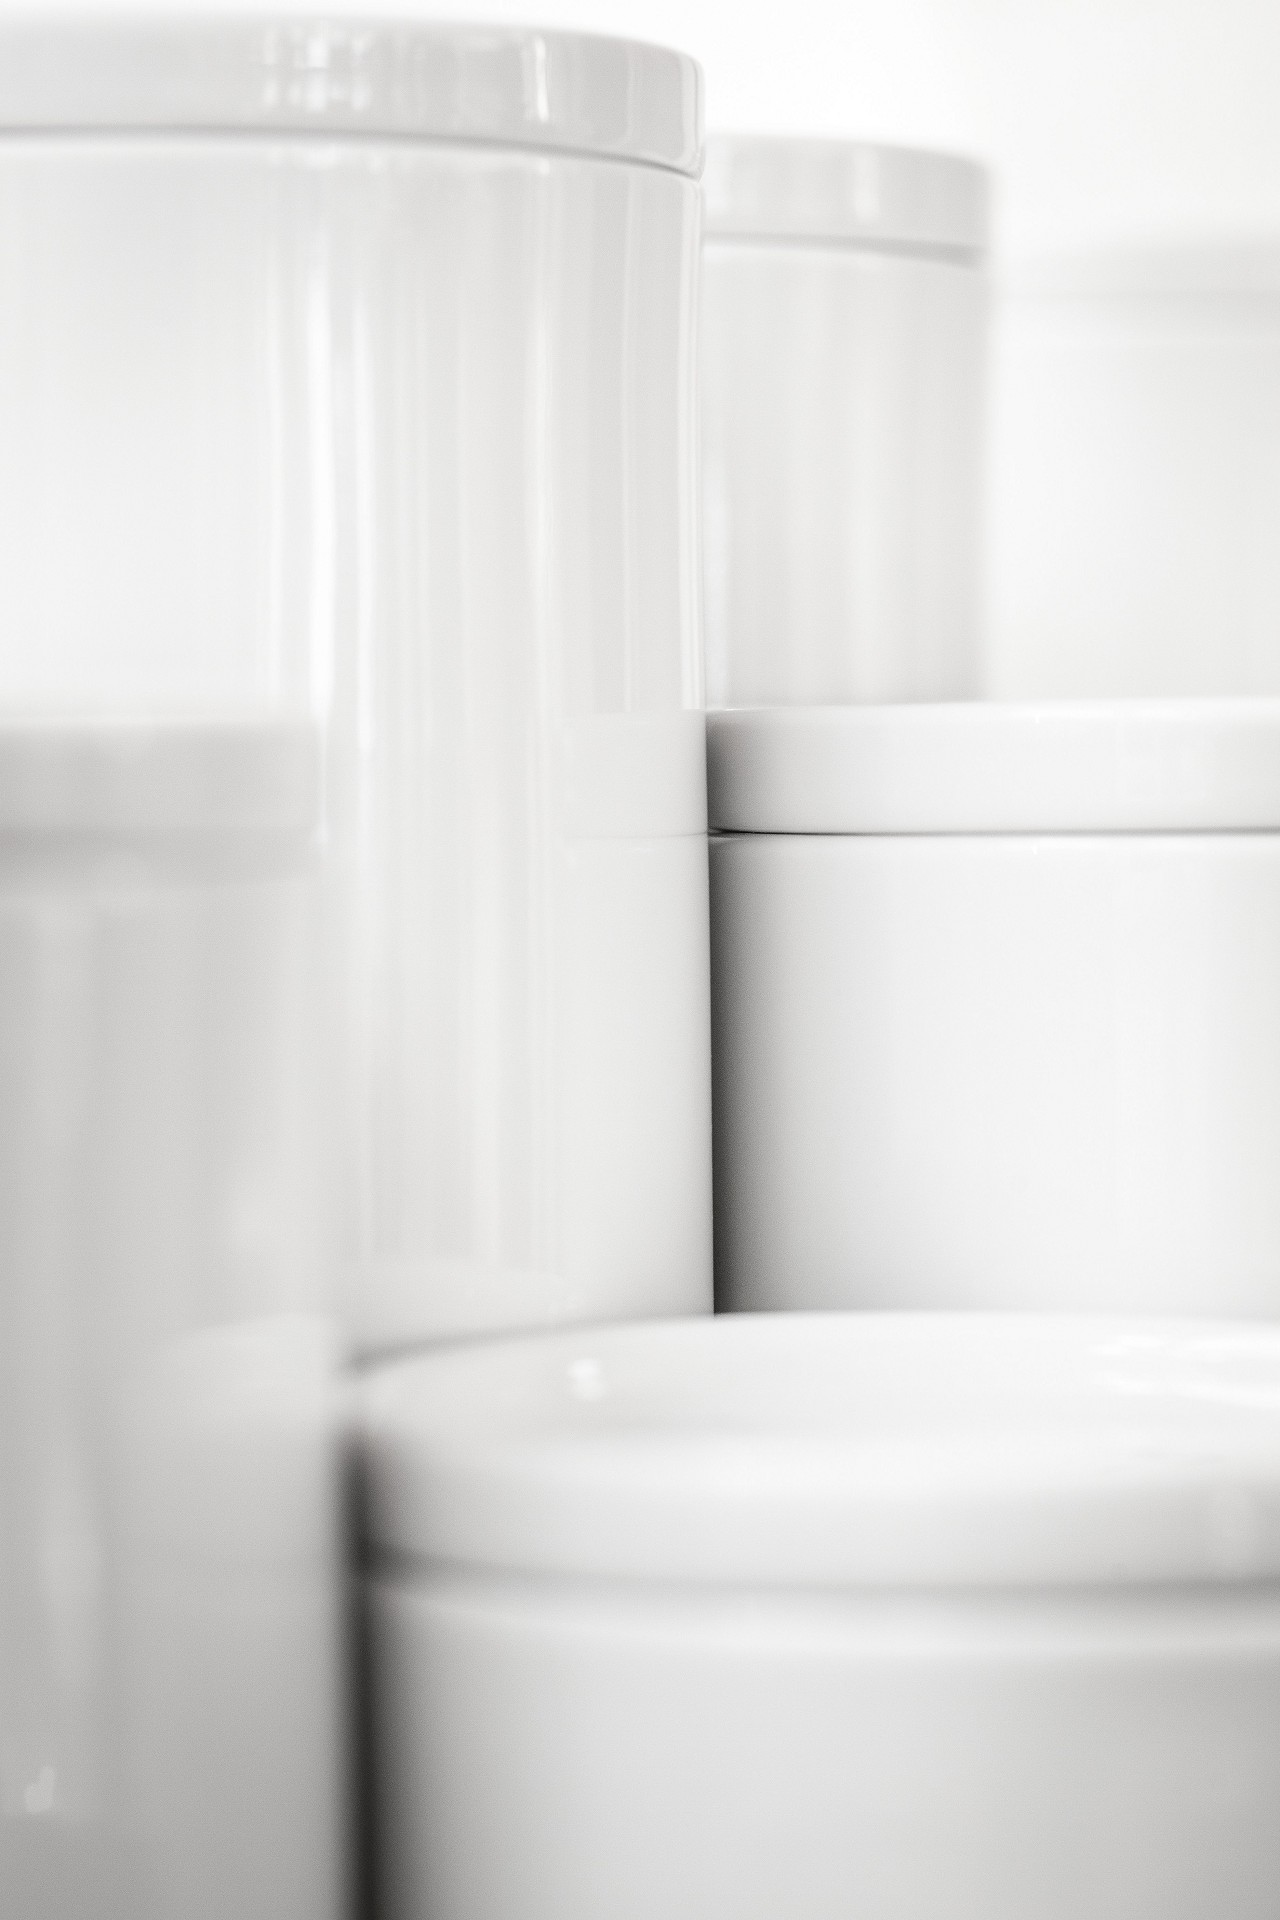 Porcelain jars for drawers and pull-outs from SieMatic kitchen interior accessories